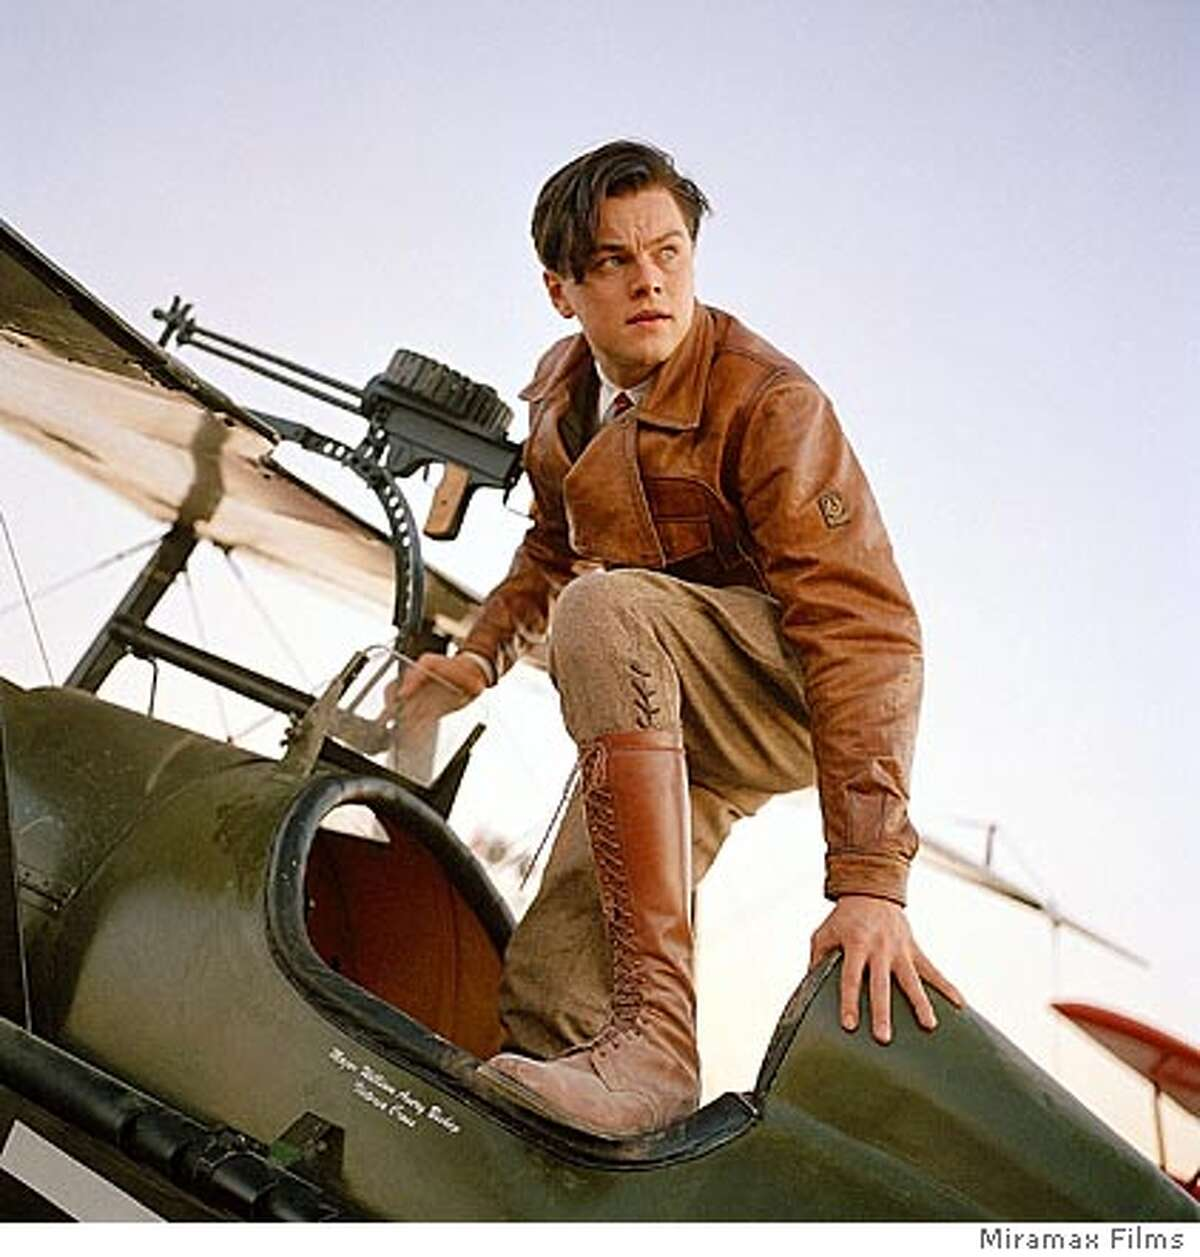 """In this undated promotional photo provided by Miramax, actor Leonardo DiCaprio portrays Howard Hughes in a scene from Martin Scorsese's """"The Aviator."""" (AP Photo/Miramax Films) Ran on: 12-14-2004 Leonardo DiCaprio in Martin Scorseses The Aviator. Ran on: 12-17-2004 Leonardo DiCaprio portrays Howard Hughes as a young man in Martin Scorseses The Aviator."""